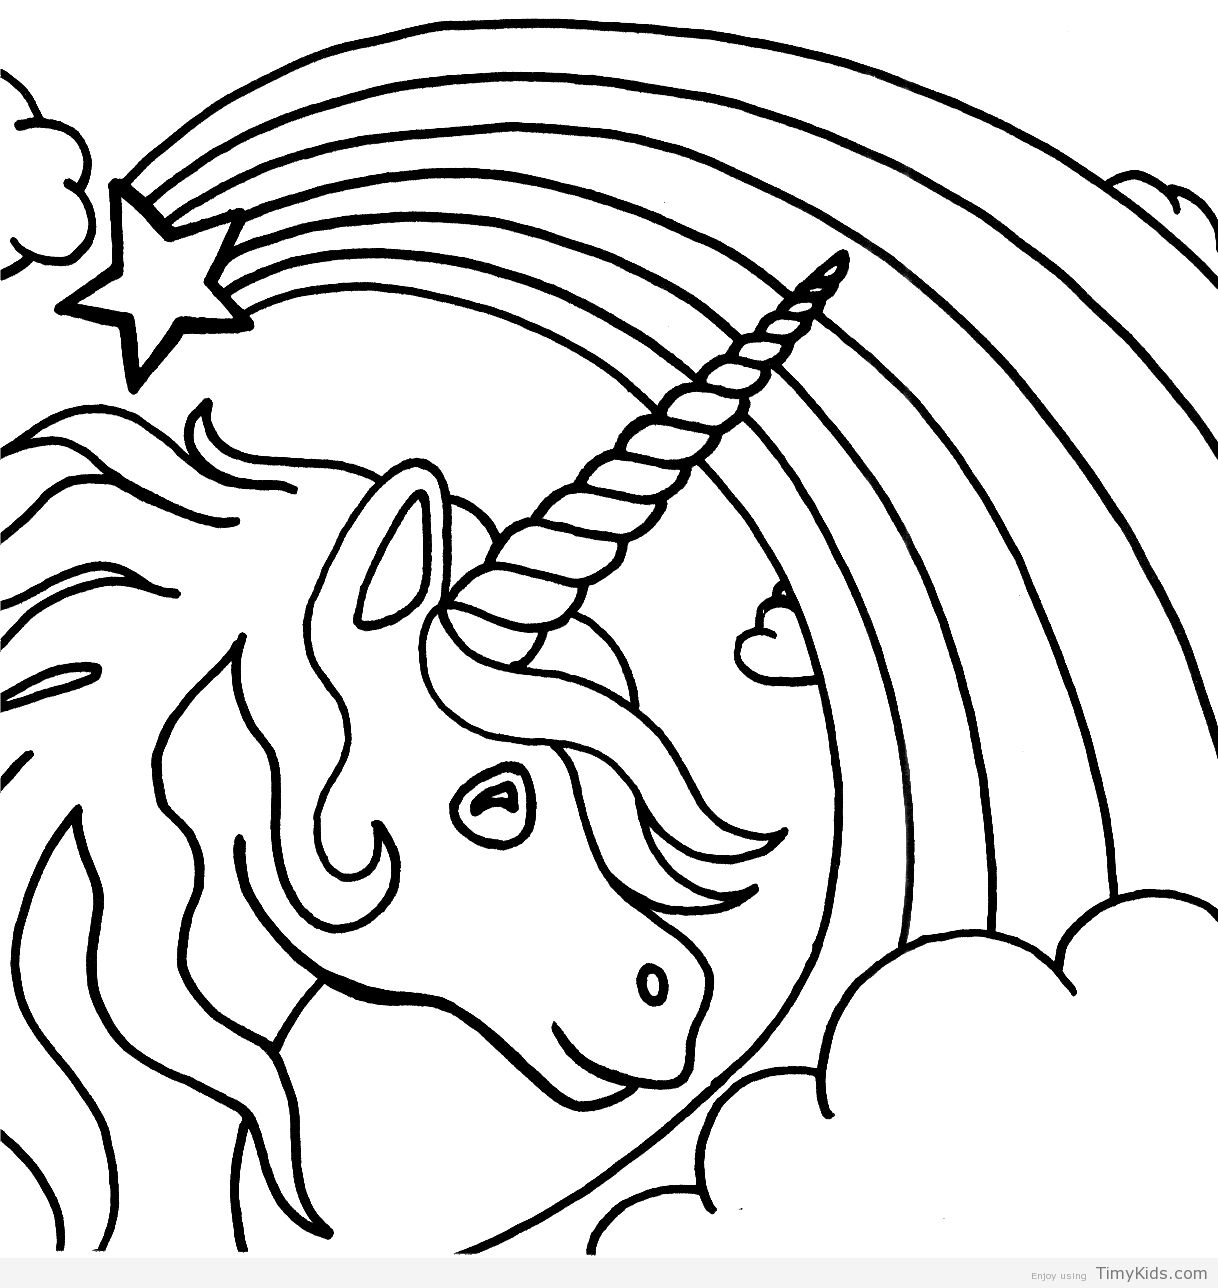 http://timykids.com/pictures-of-unicorns-to-color.html   Colorings ...